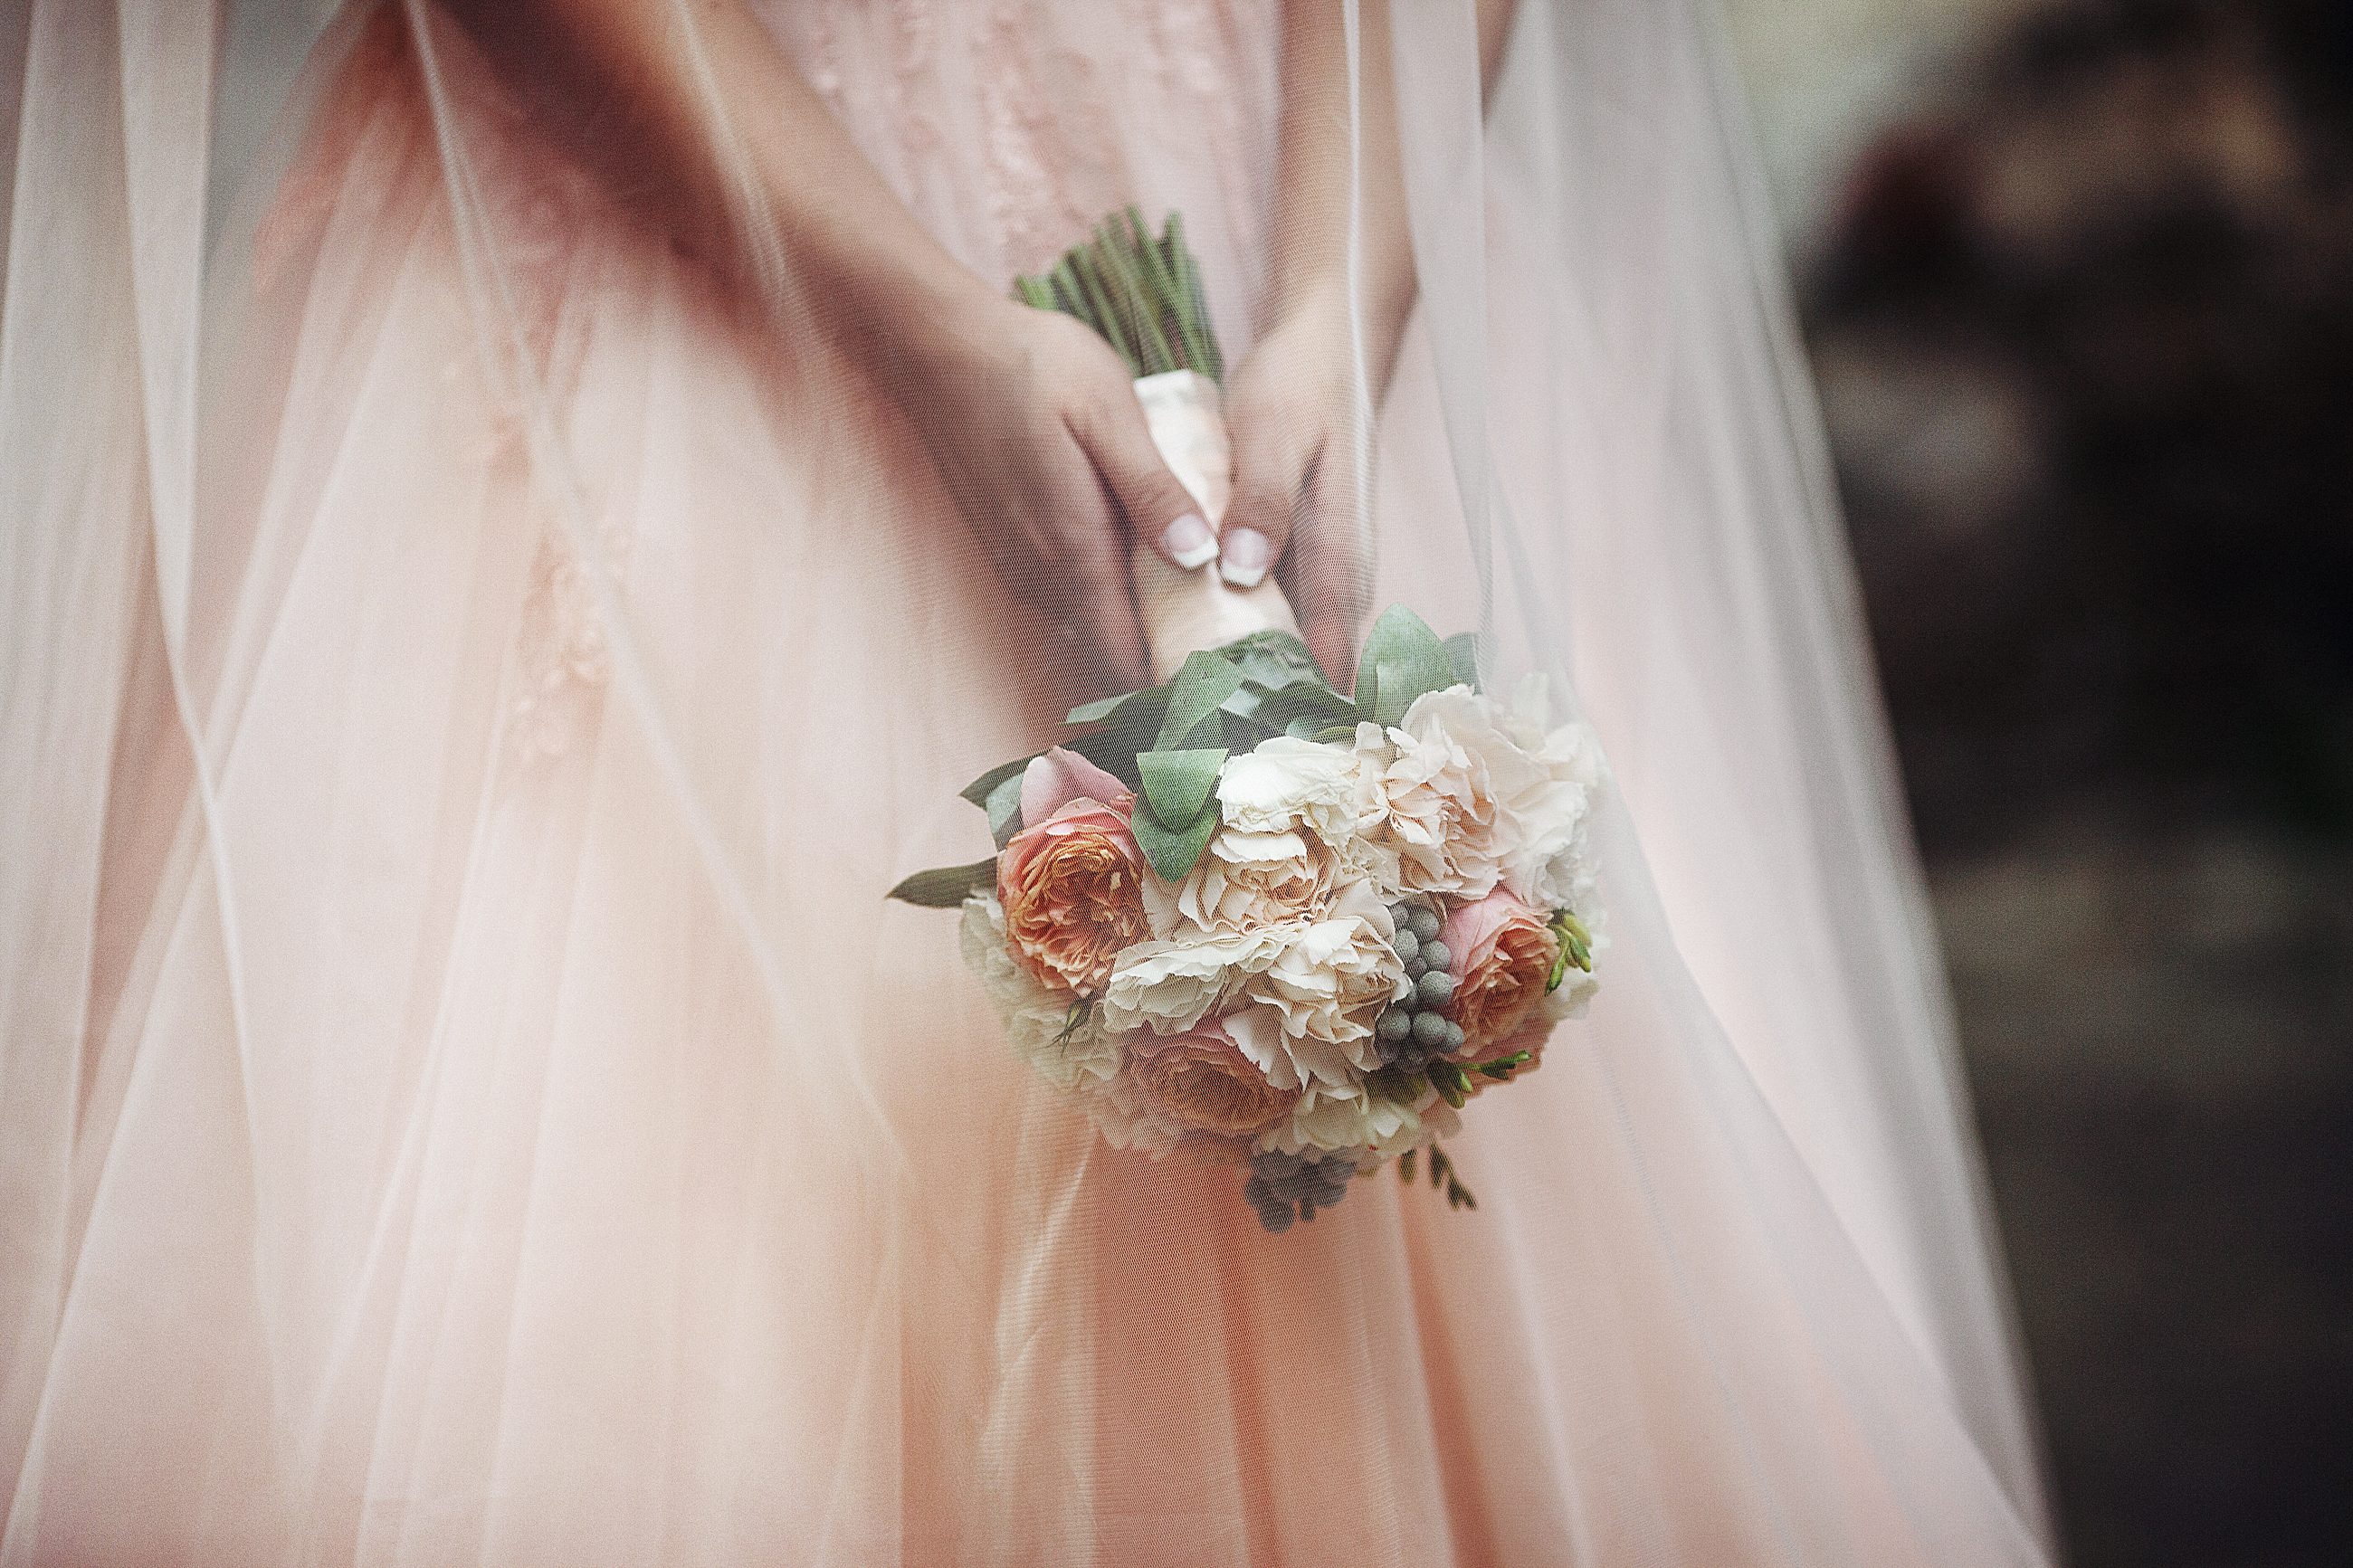 Beautiful bride in a pink dress holding a bouquet